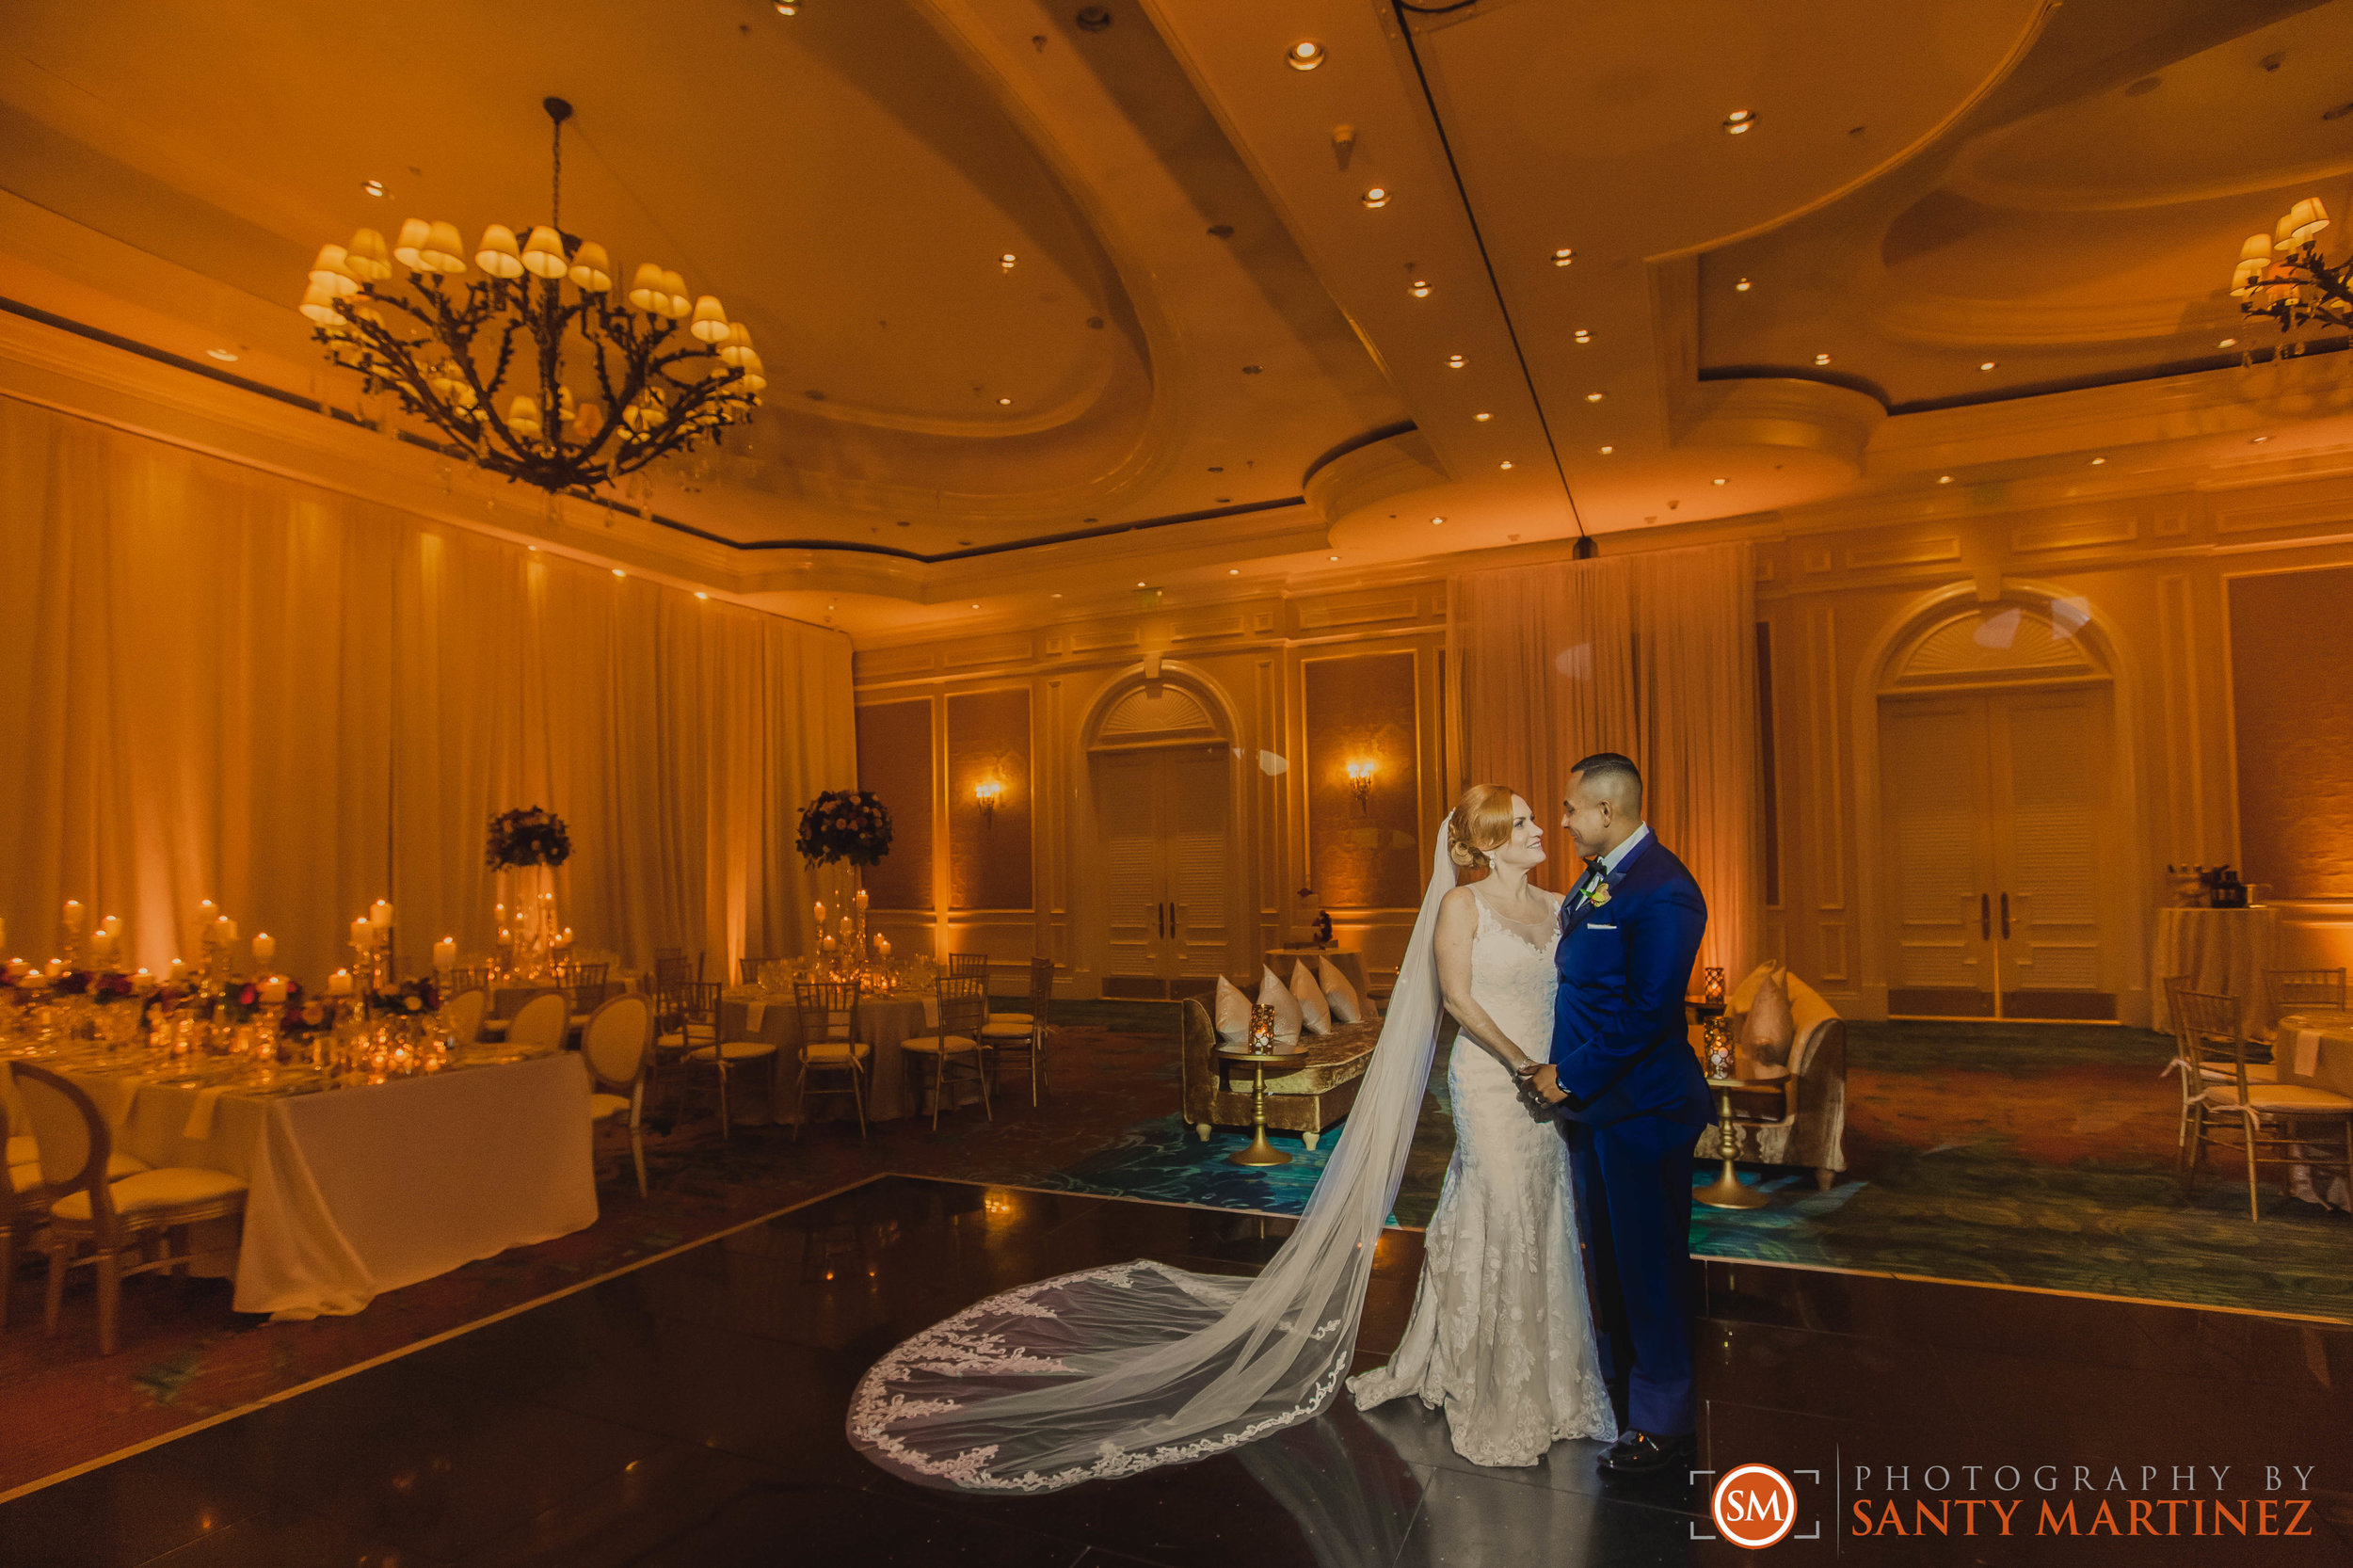 Wedding Ritz Carlton Coconut Grove - Santy Martinez-34.jpg